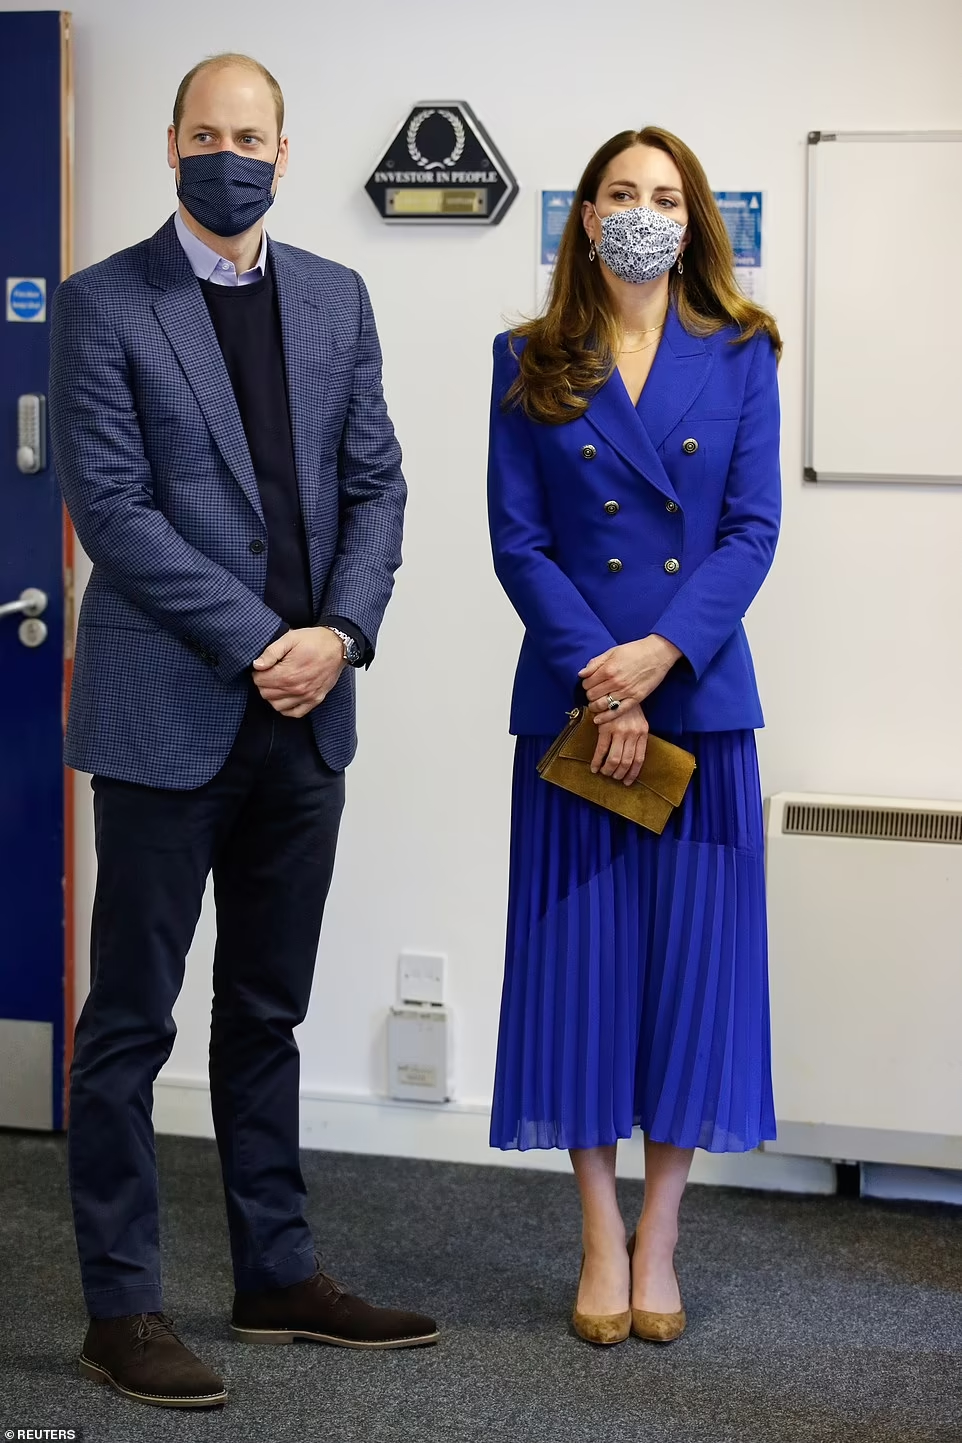 prince-william-duchess-catherine-visit-the-turning-point-scotland-social-care-centre